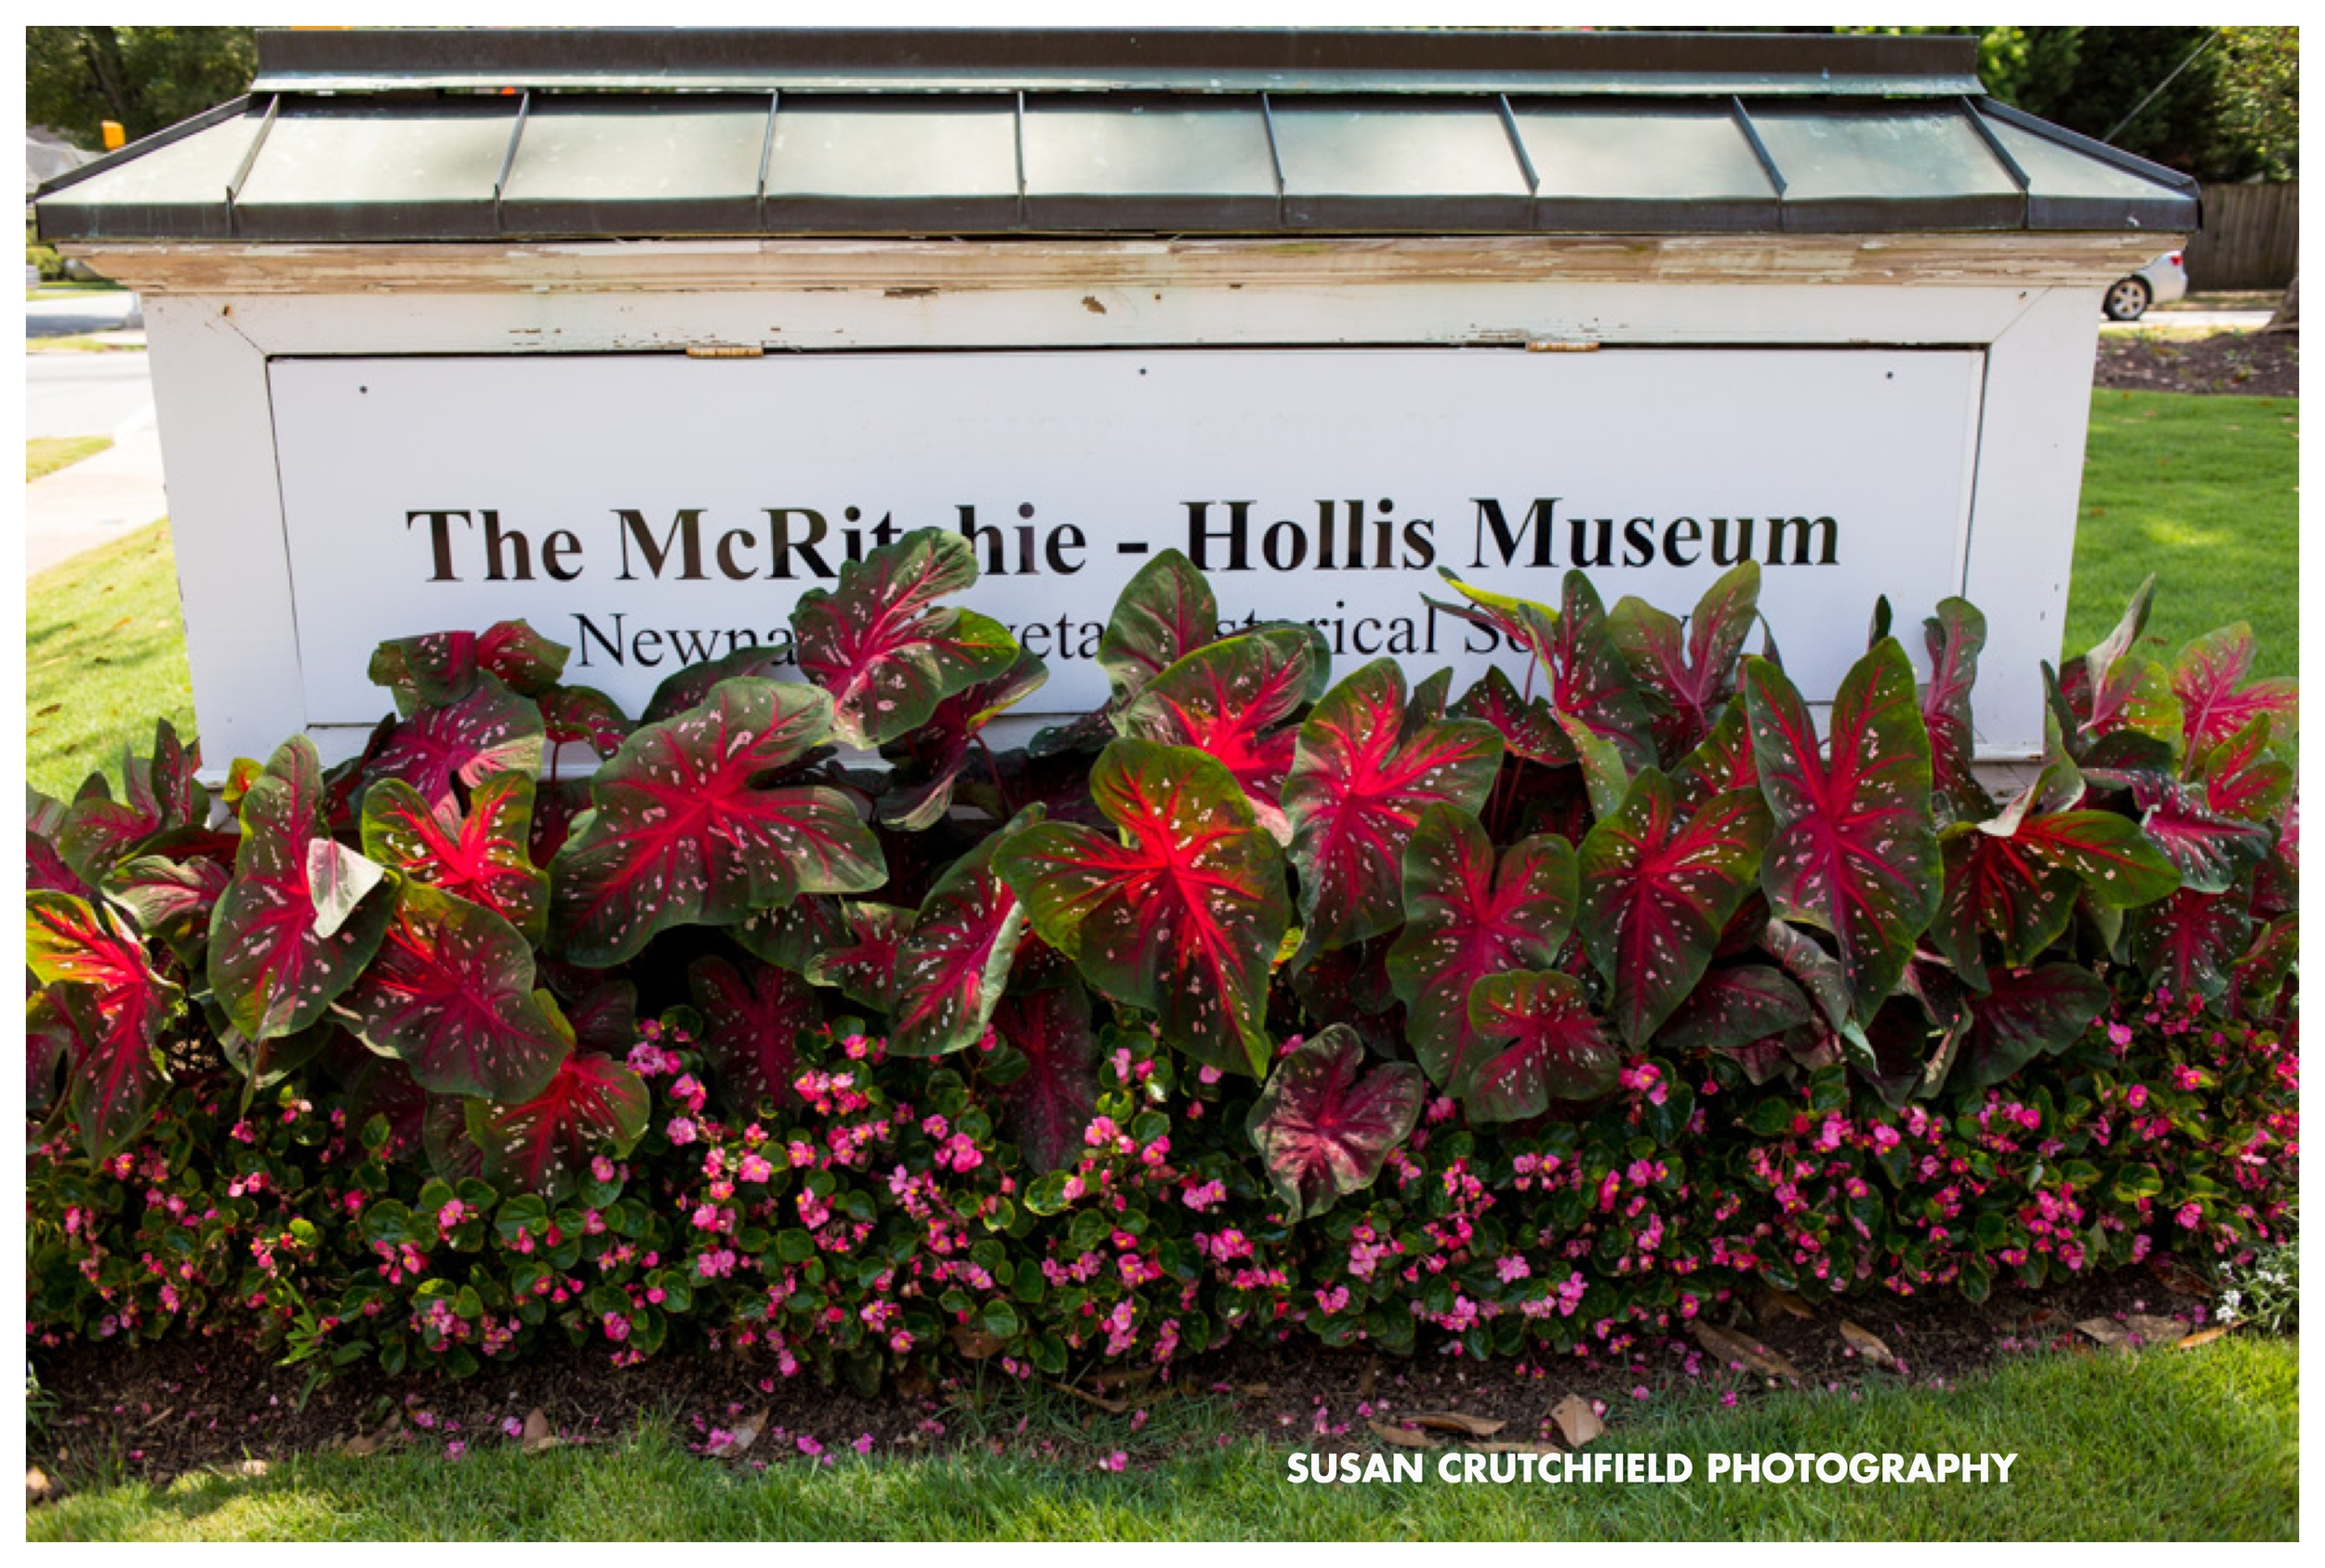 McRitchie-Hollis Museum Newnan, GA © Susan Crutchfield Photography